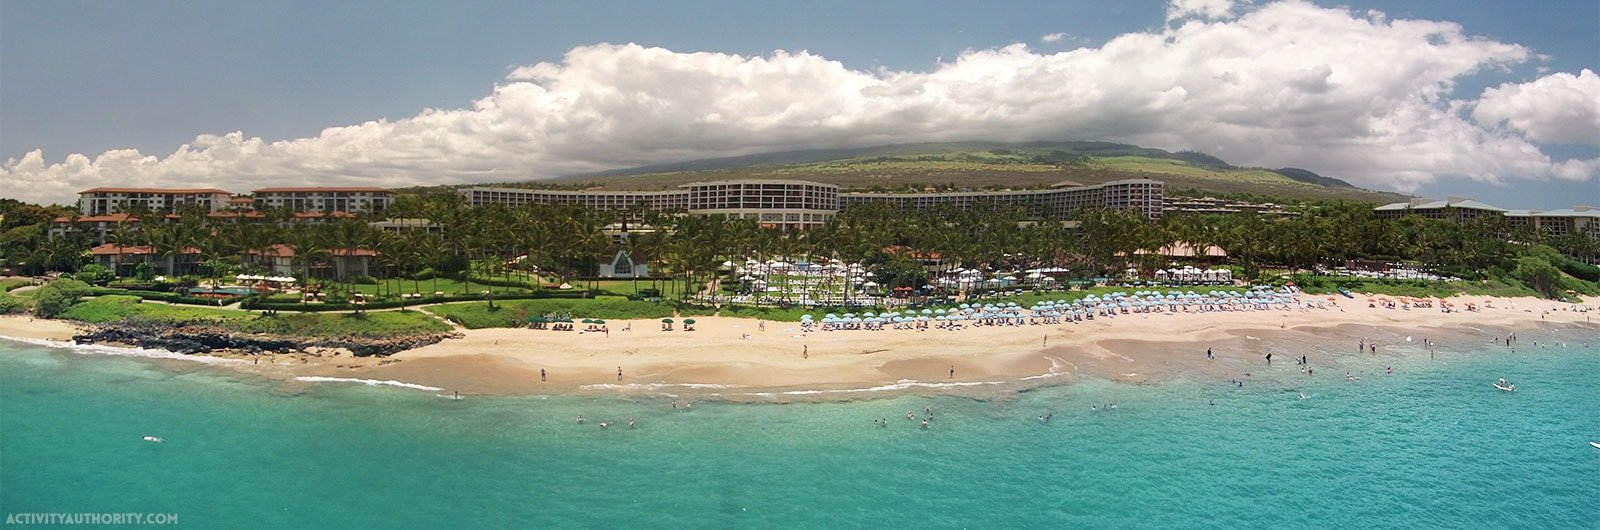 10 Things You Should Know About the Grand Wailea Before Arriving